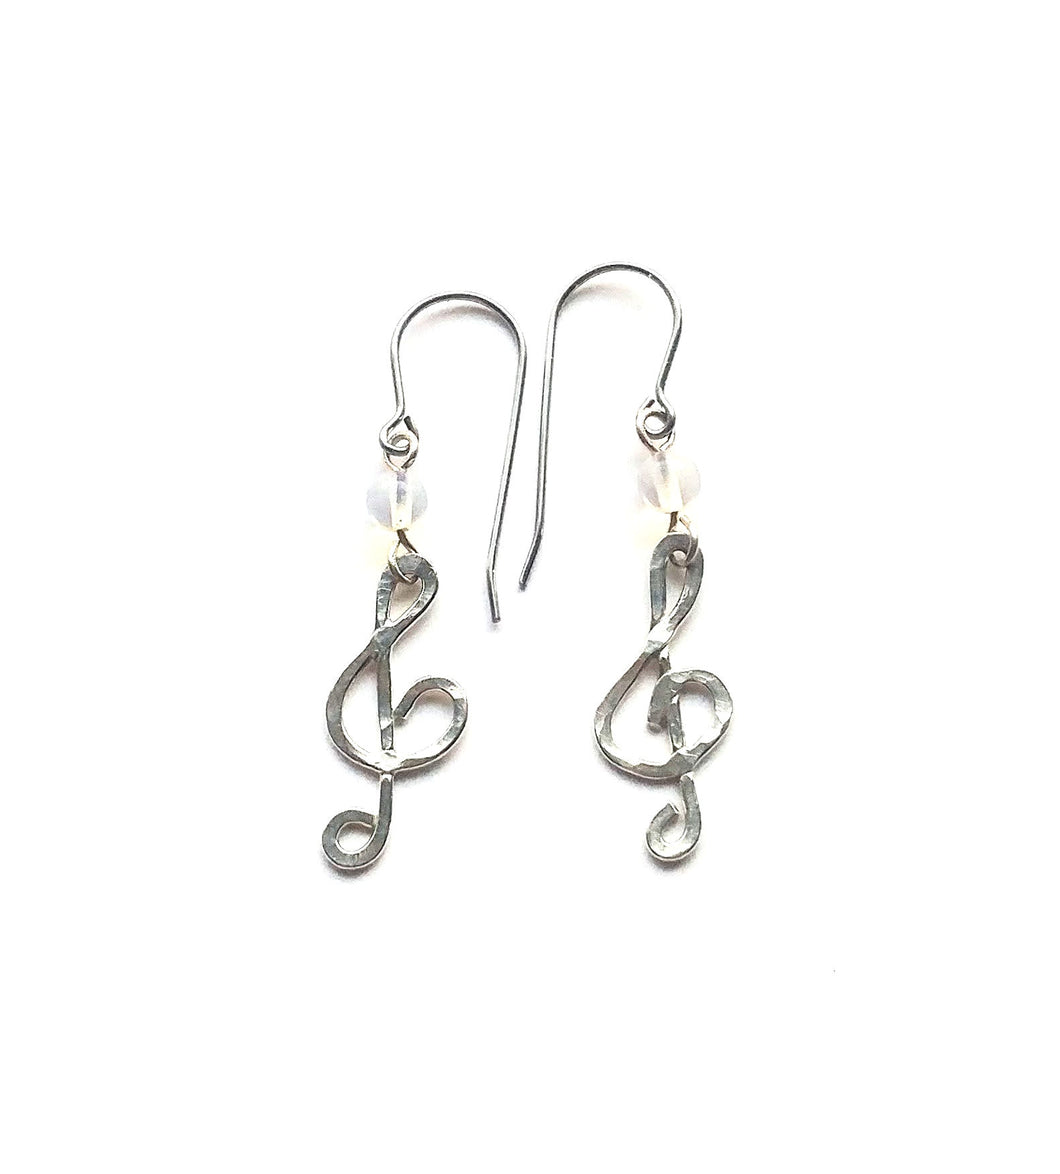 Opalite and sterling silver treble clef earrings